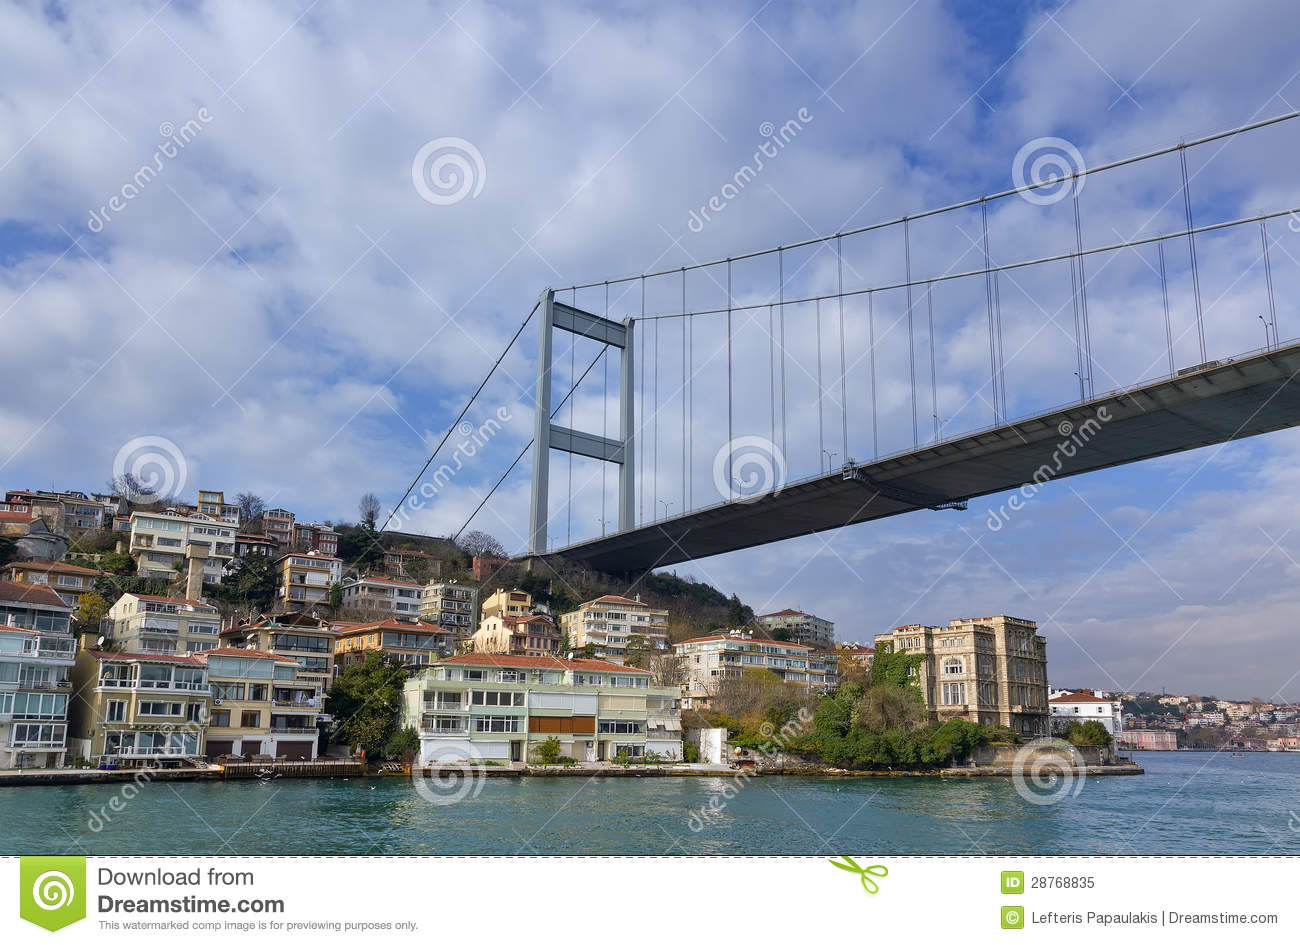 Fatih Sultan Mehmet Bridge Over Hisarustu Neighborhood, Istanbul.